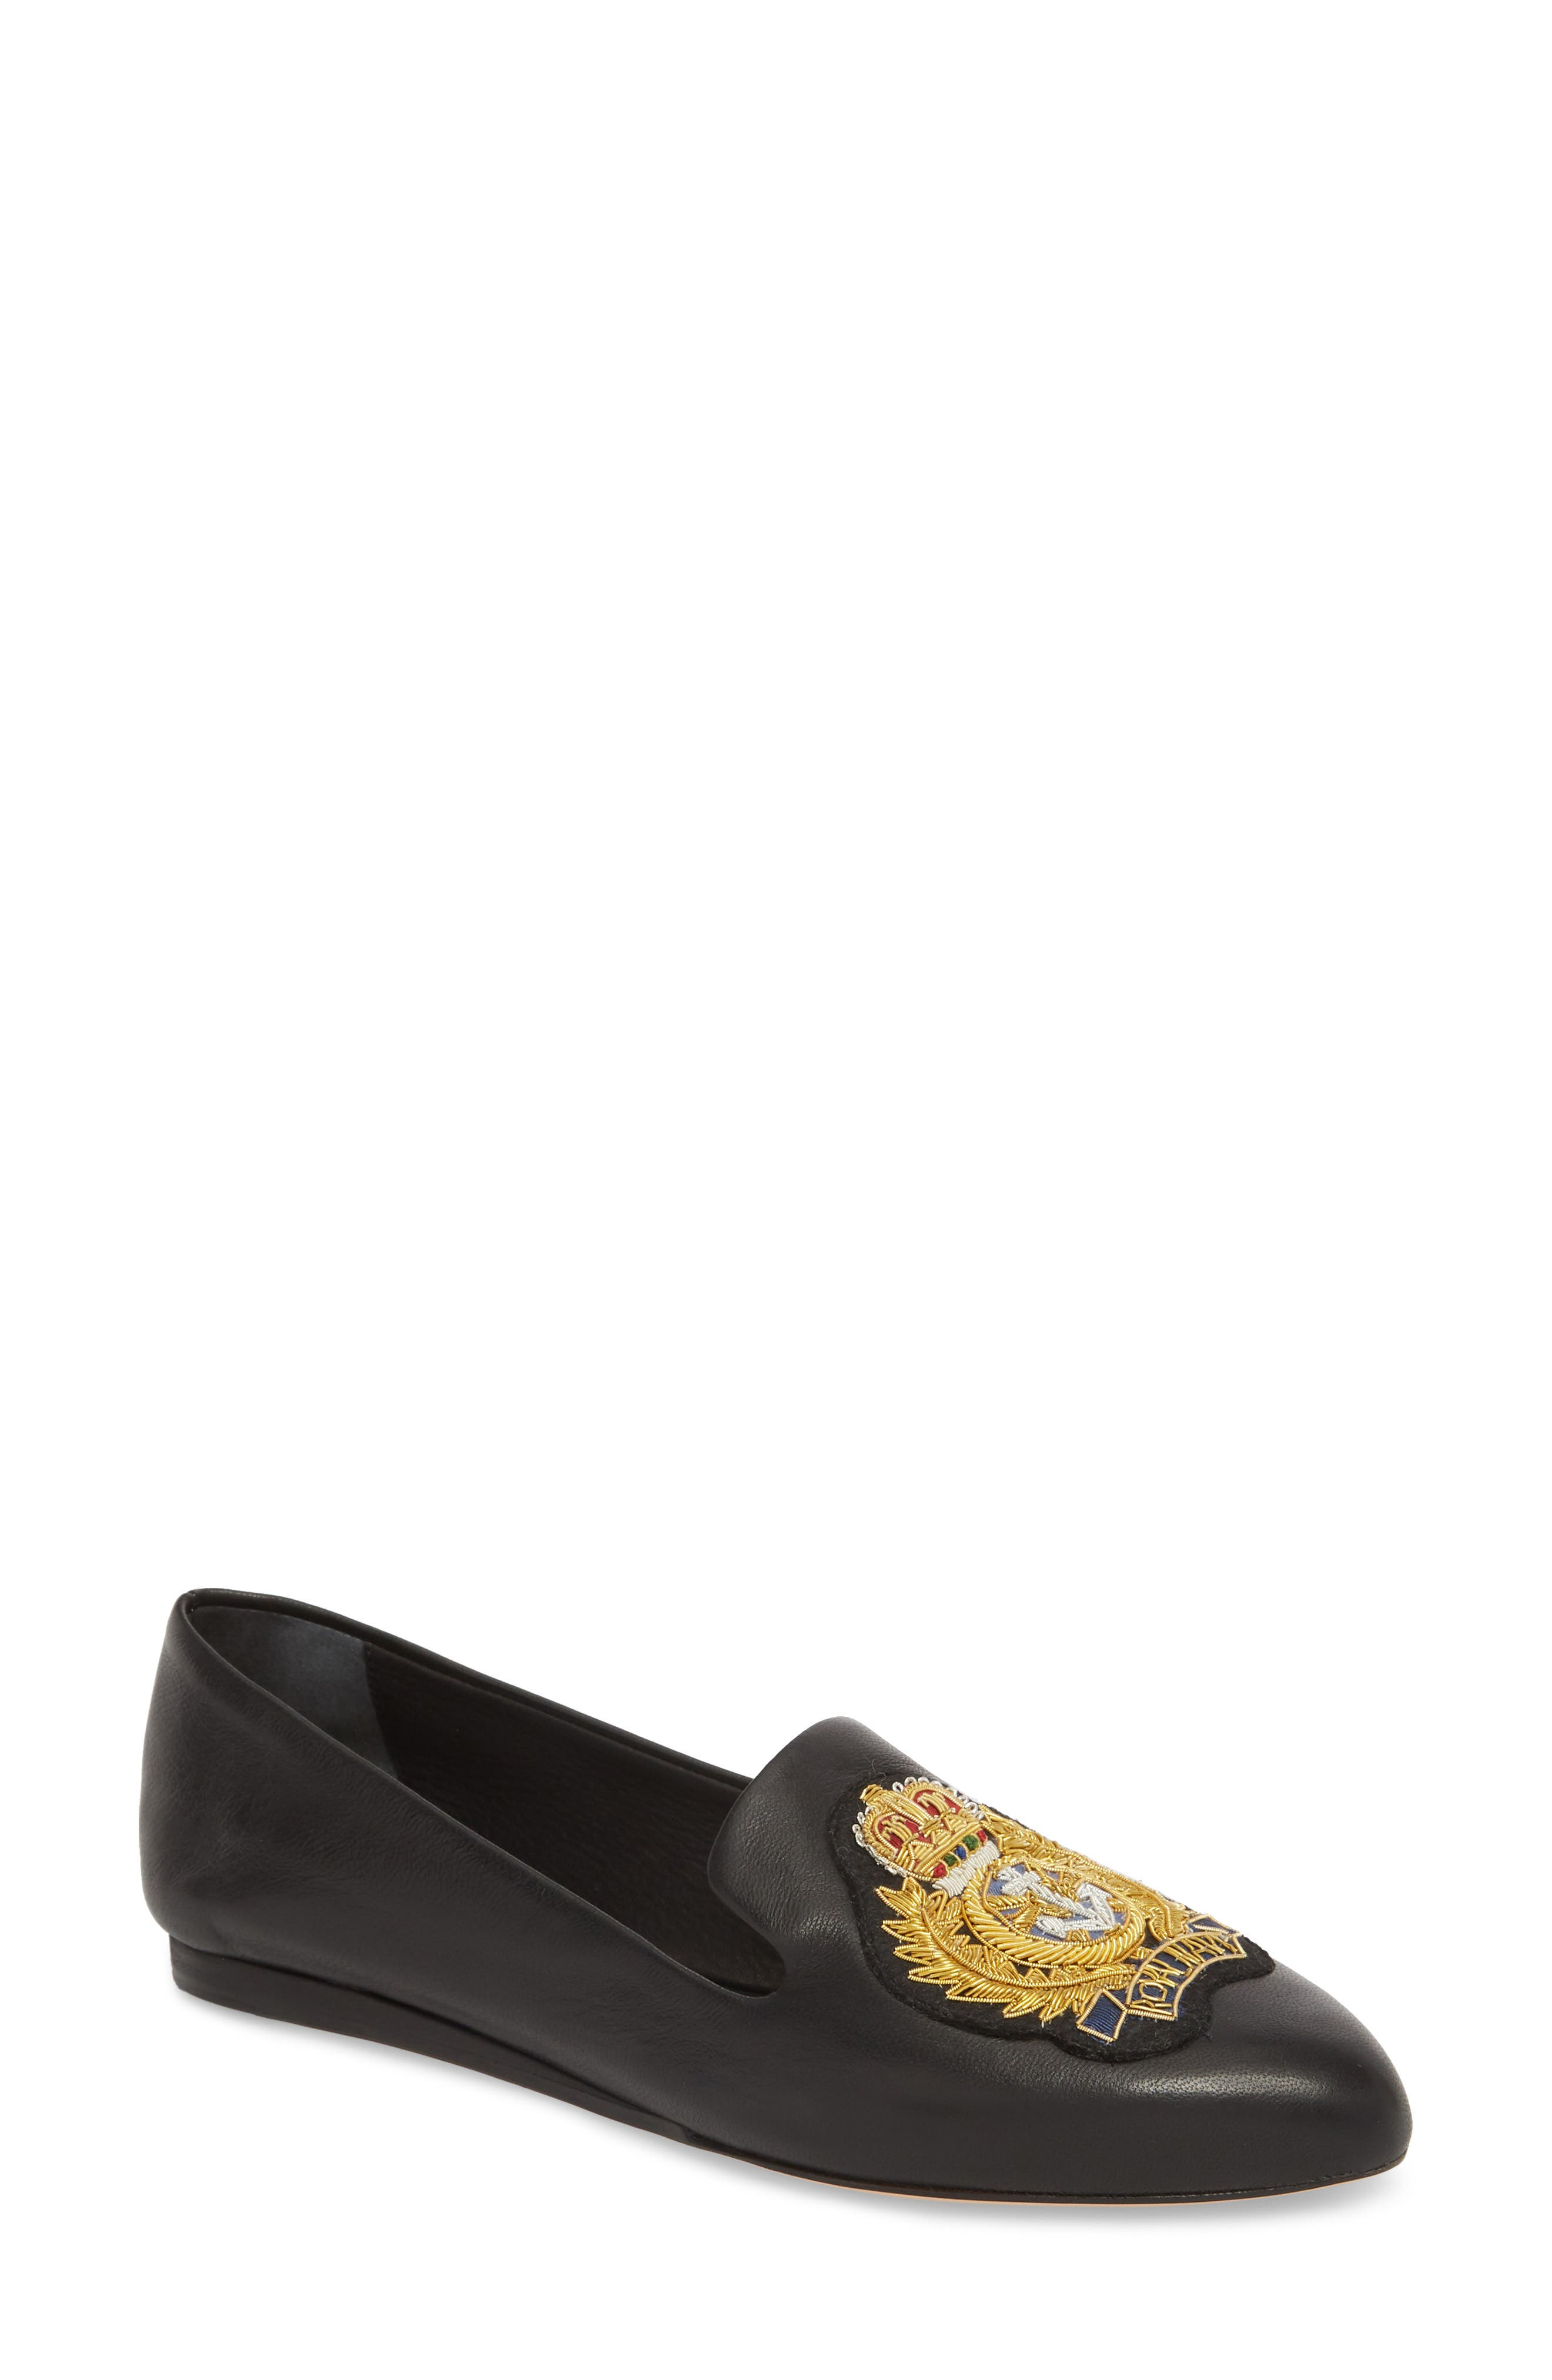 Griffin Pointy Toe Loafer,                         Main,                         color, BLACK LEATHER